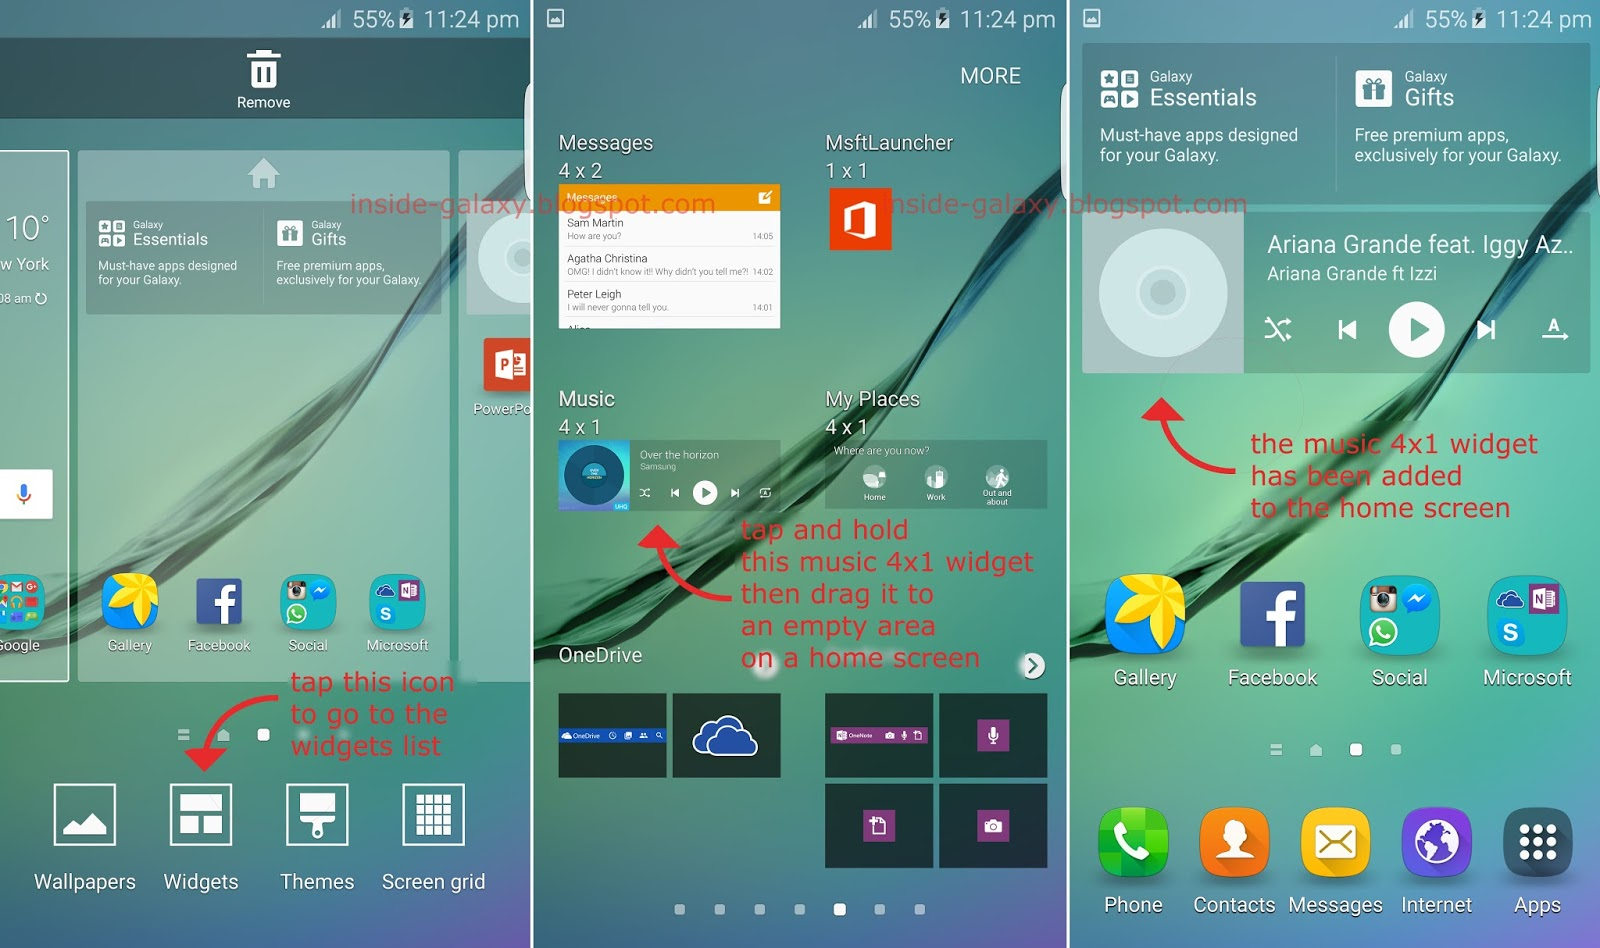 Samsung Galaxy S6 Edge: How To Add Or Remove Widget In